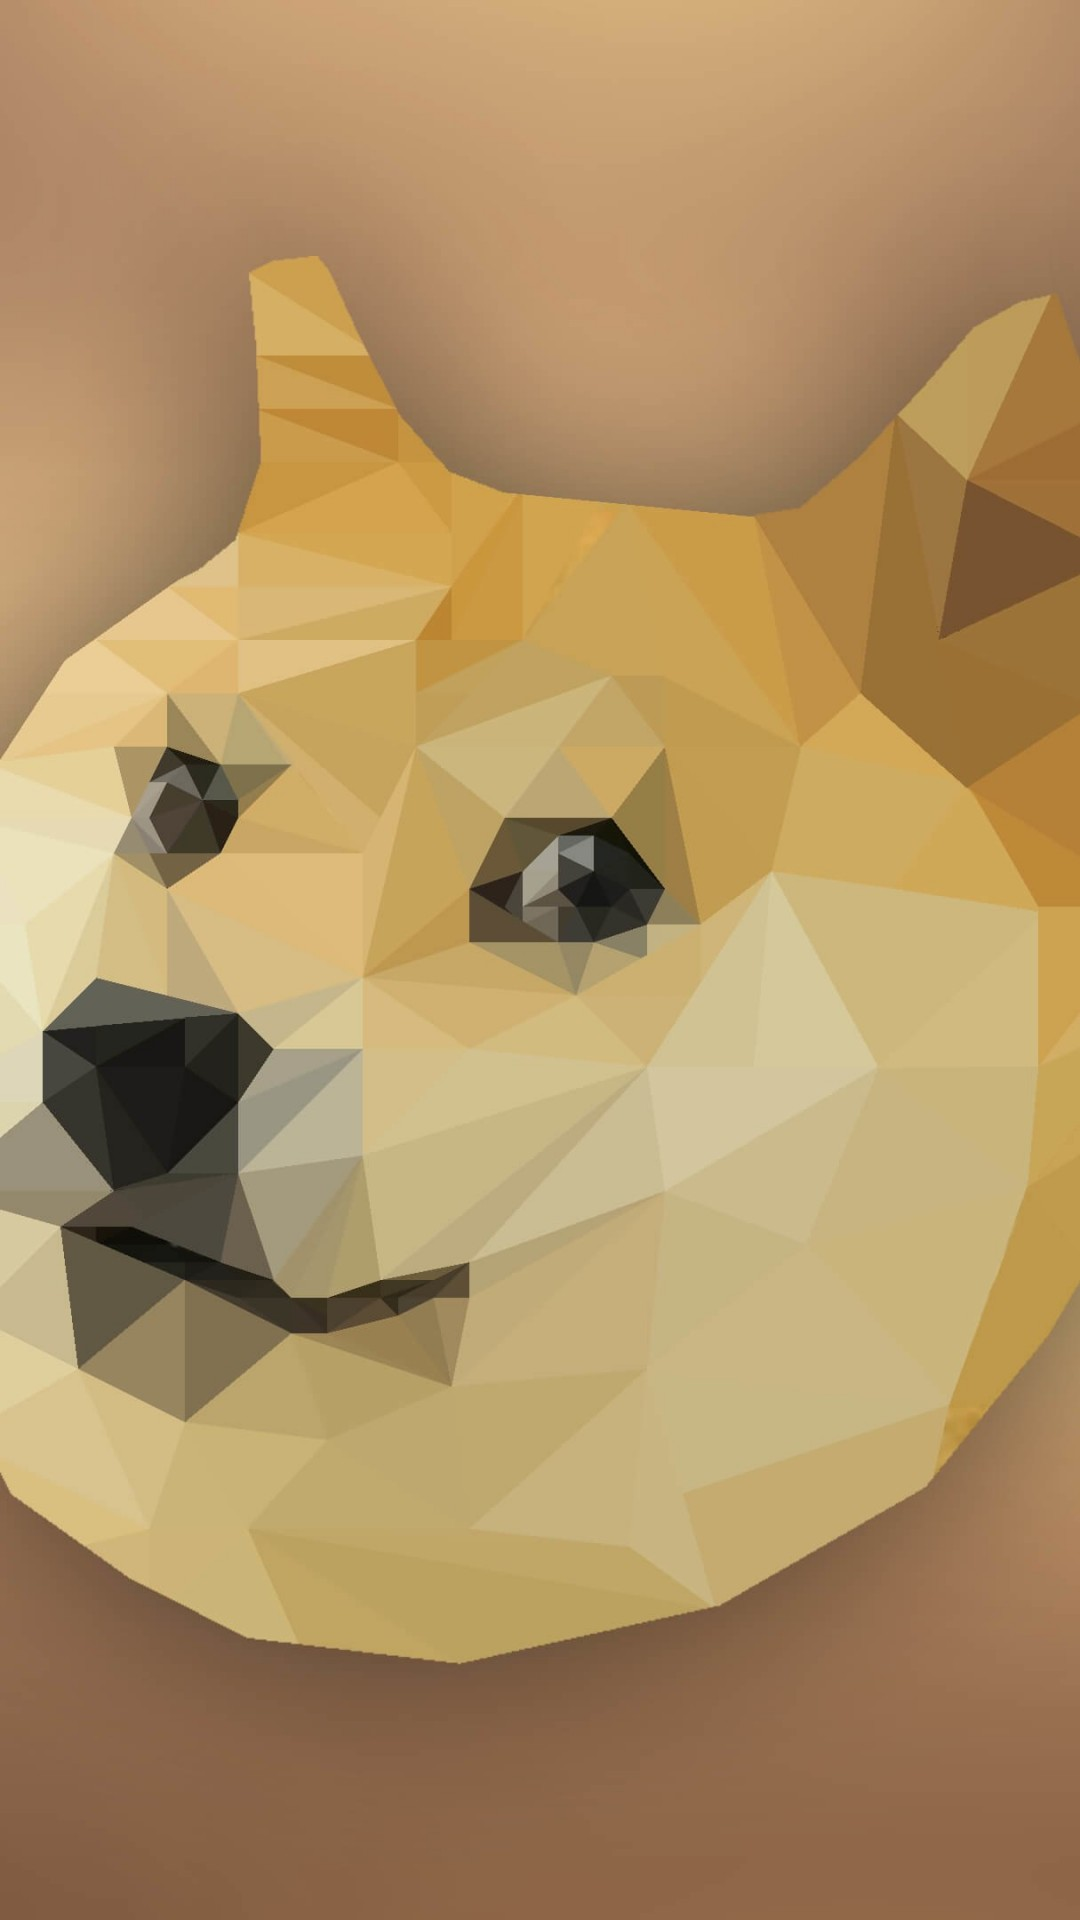 Low Poly Doge Wallpaper for SONY Xperia Z3